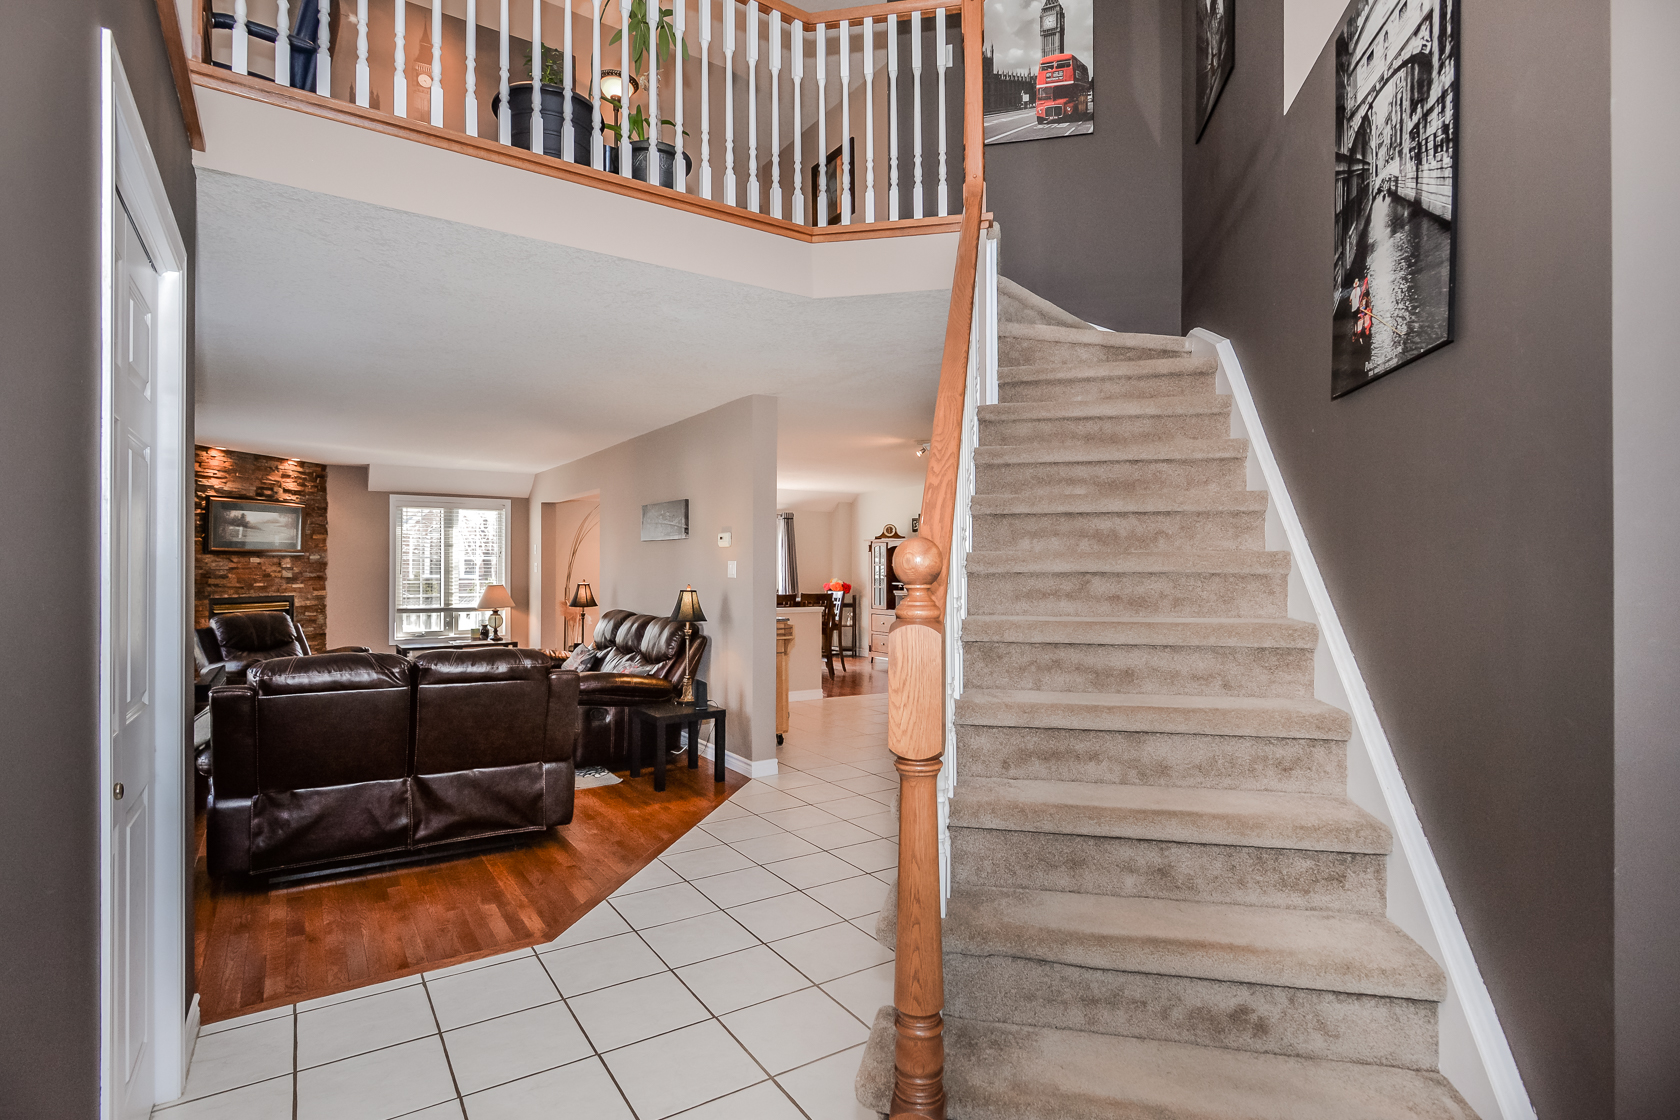 Guelph Property Value